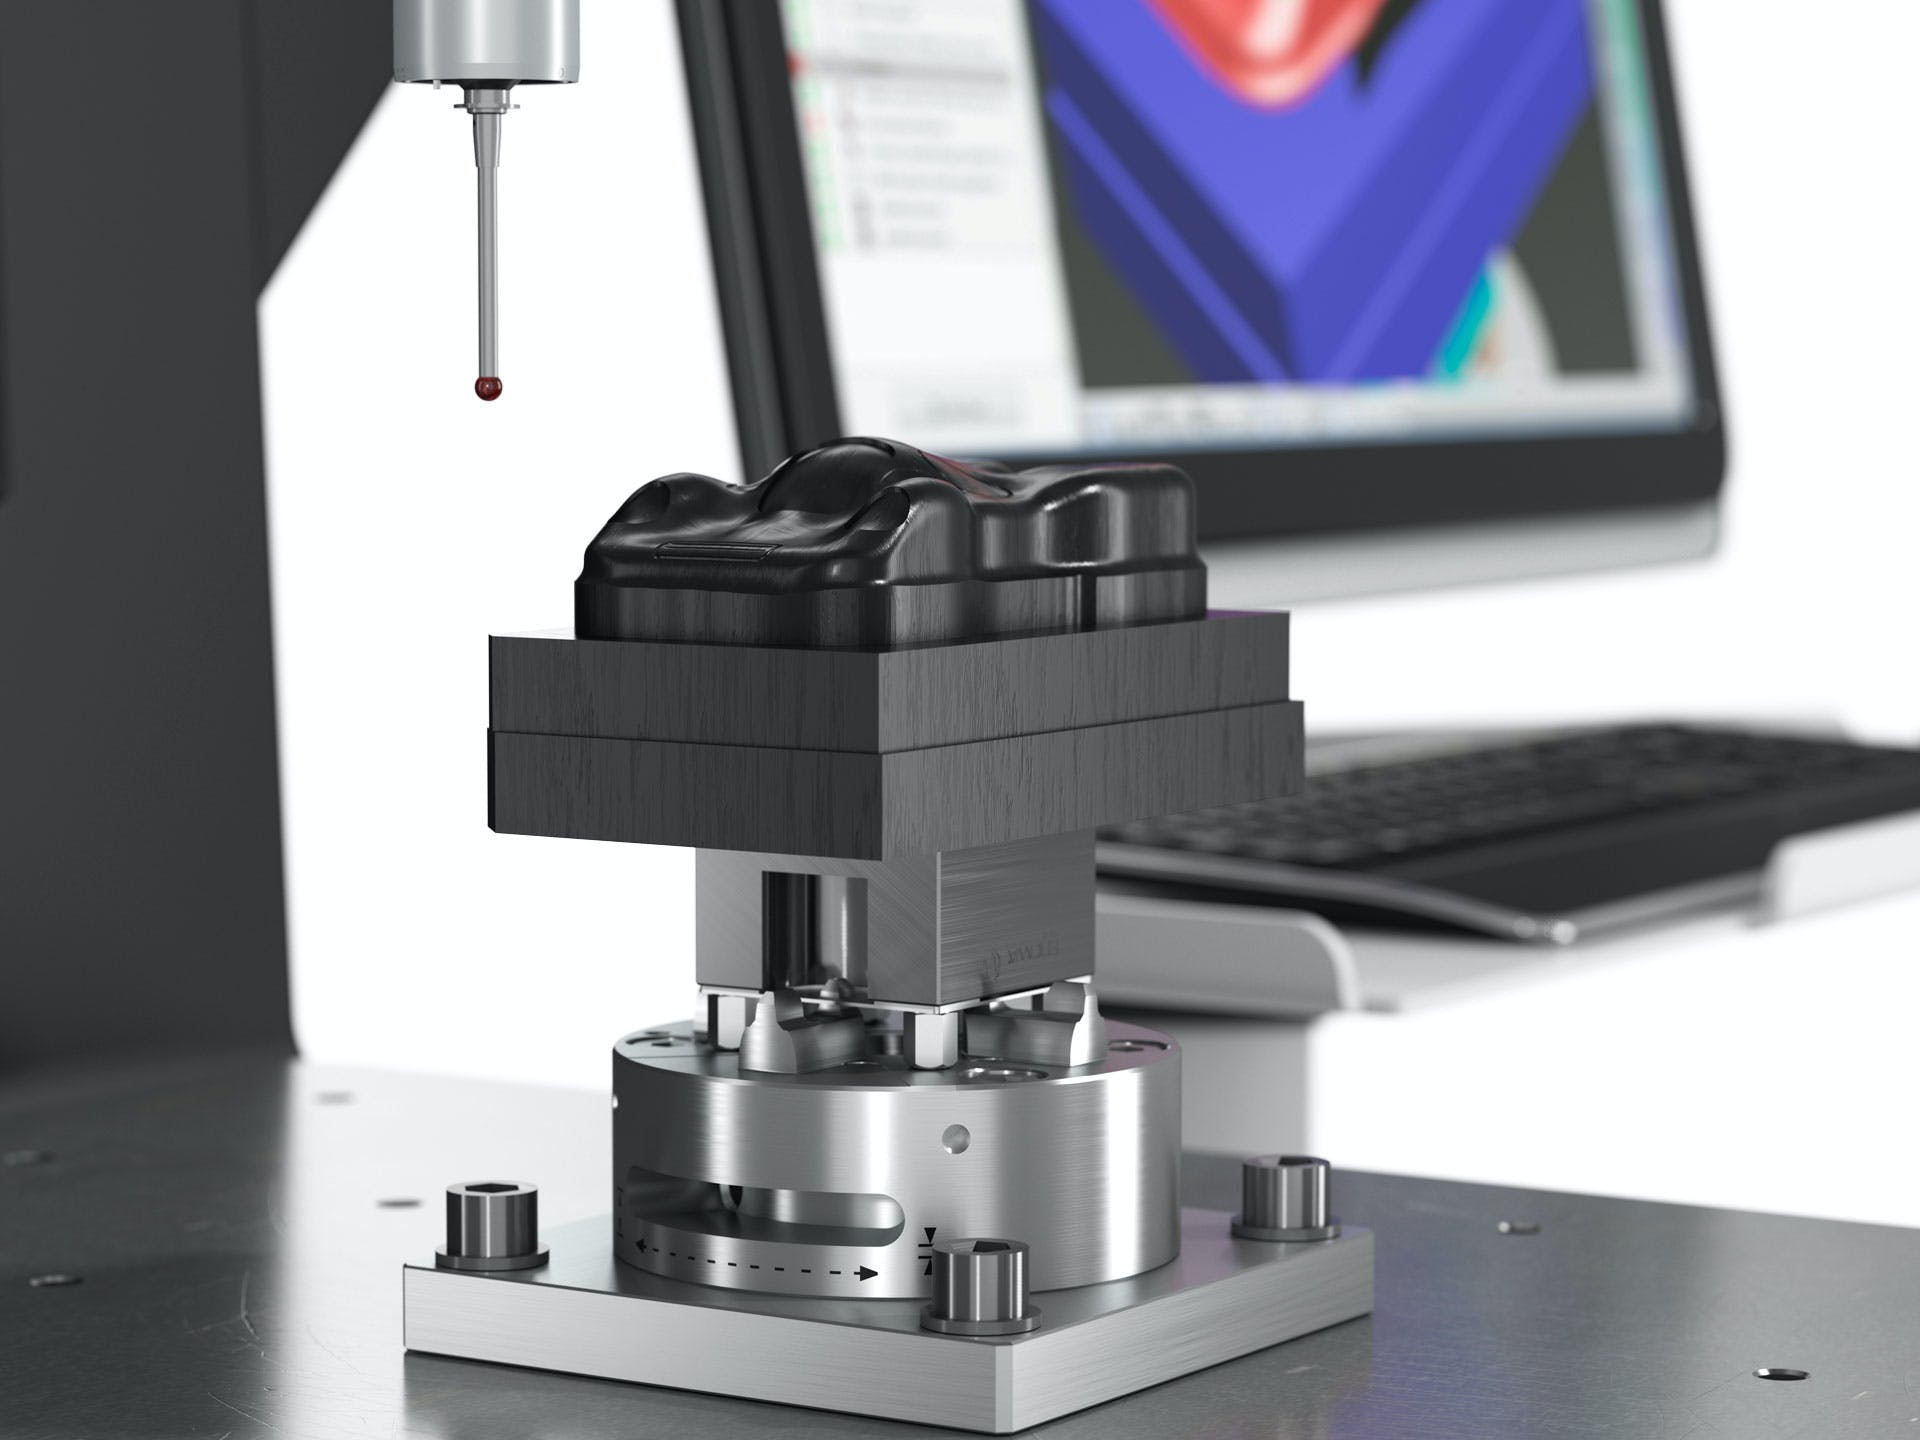 https://www zeiss co uk/metrology/new html 2019-07-25T14:12:49+02